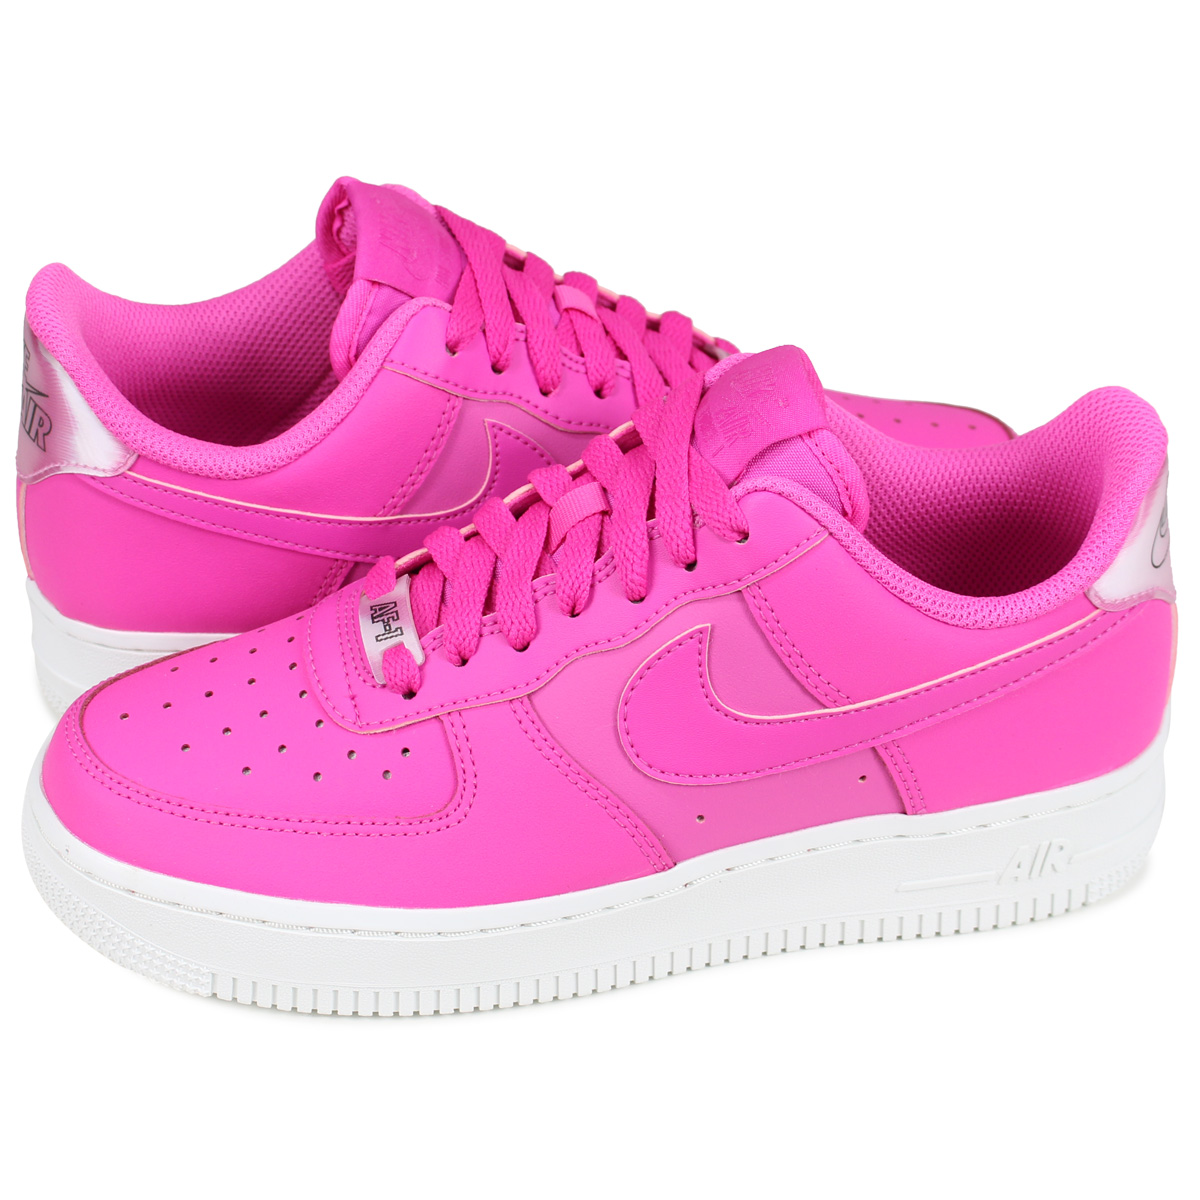 Nike Air Force 1 07 Essential in weiss AO2132 003 | Nike